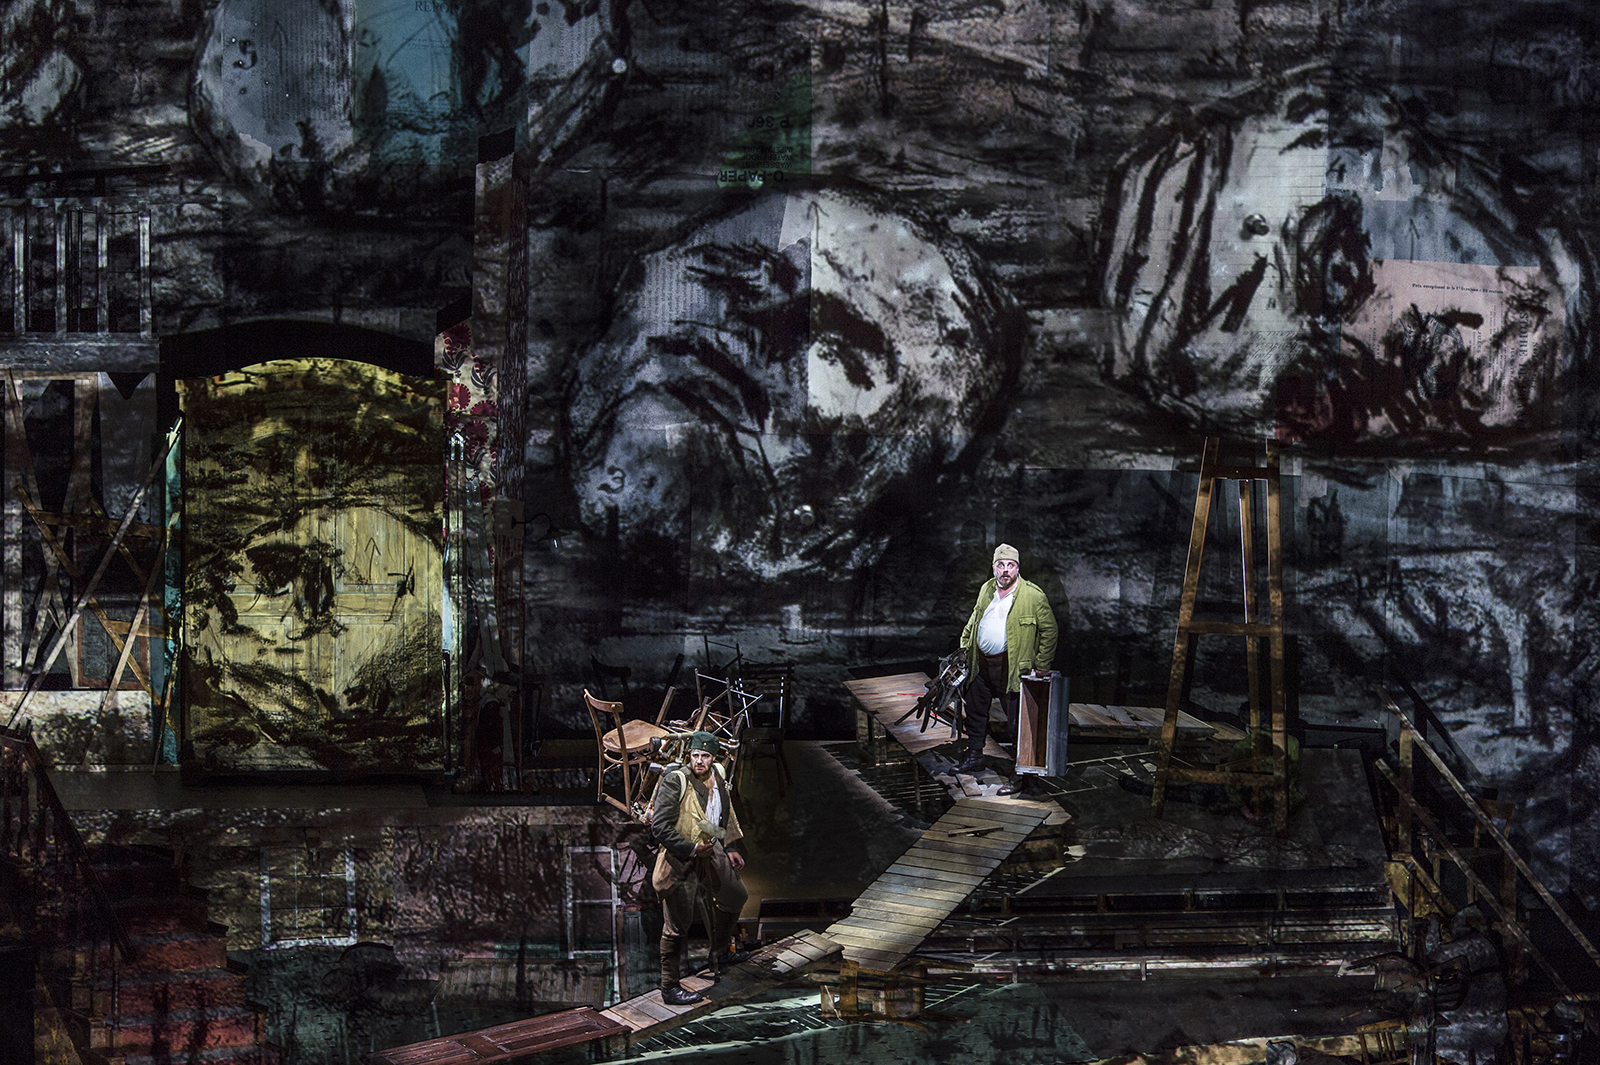 William Kentridge and Sabine Theunissen, Wozzeck | Salzburger Festspiele 2017 | © SF / Ruth Walz